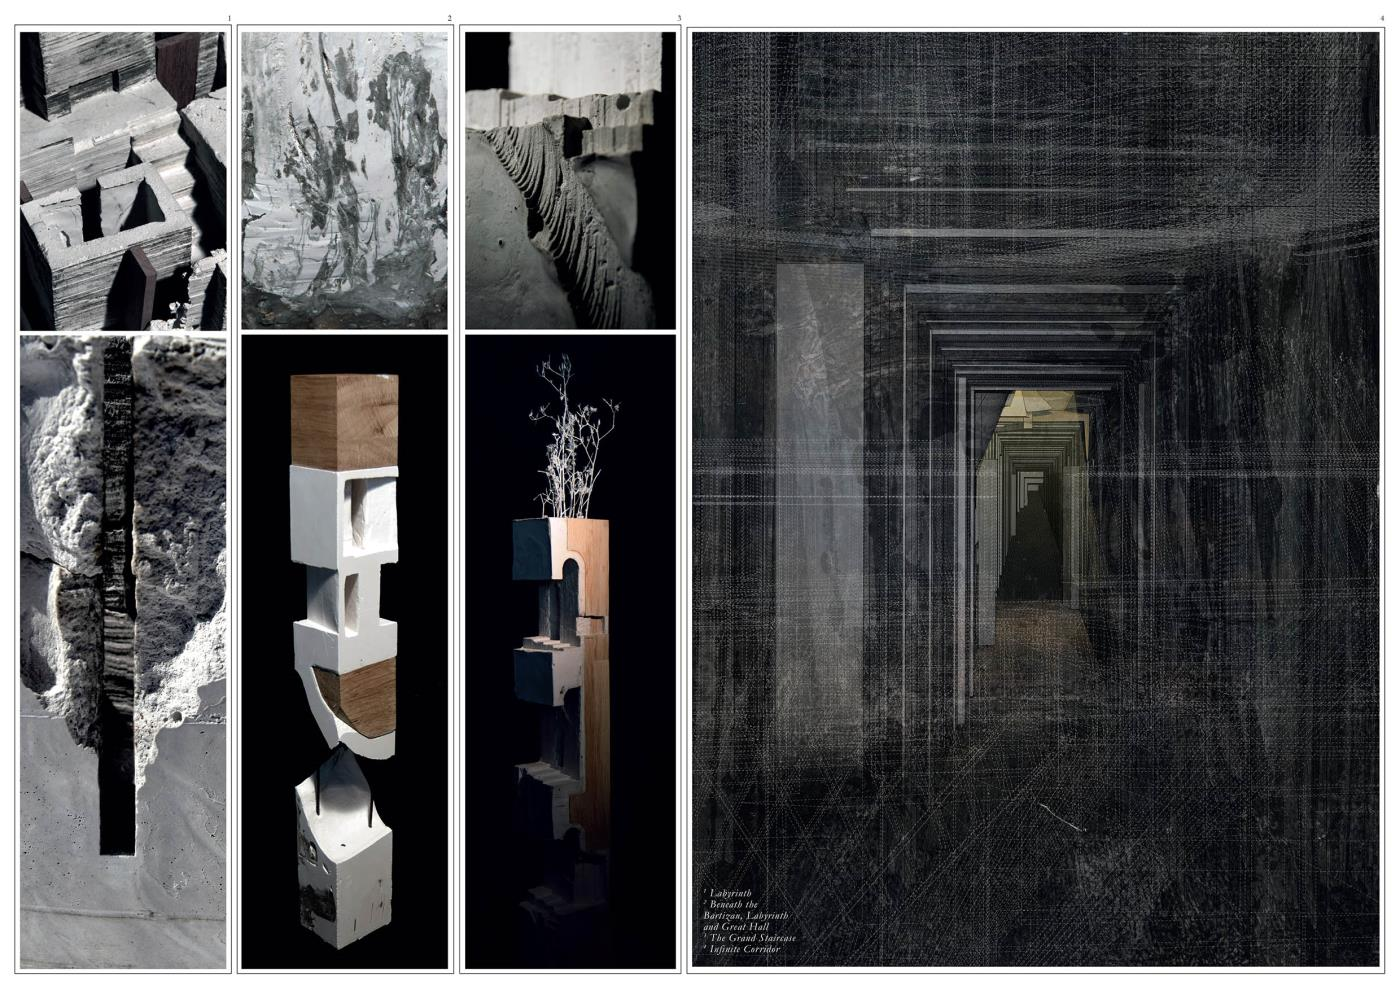 The House of Ambiguity: Constructing Fictional Space